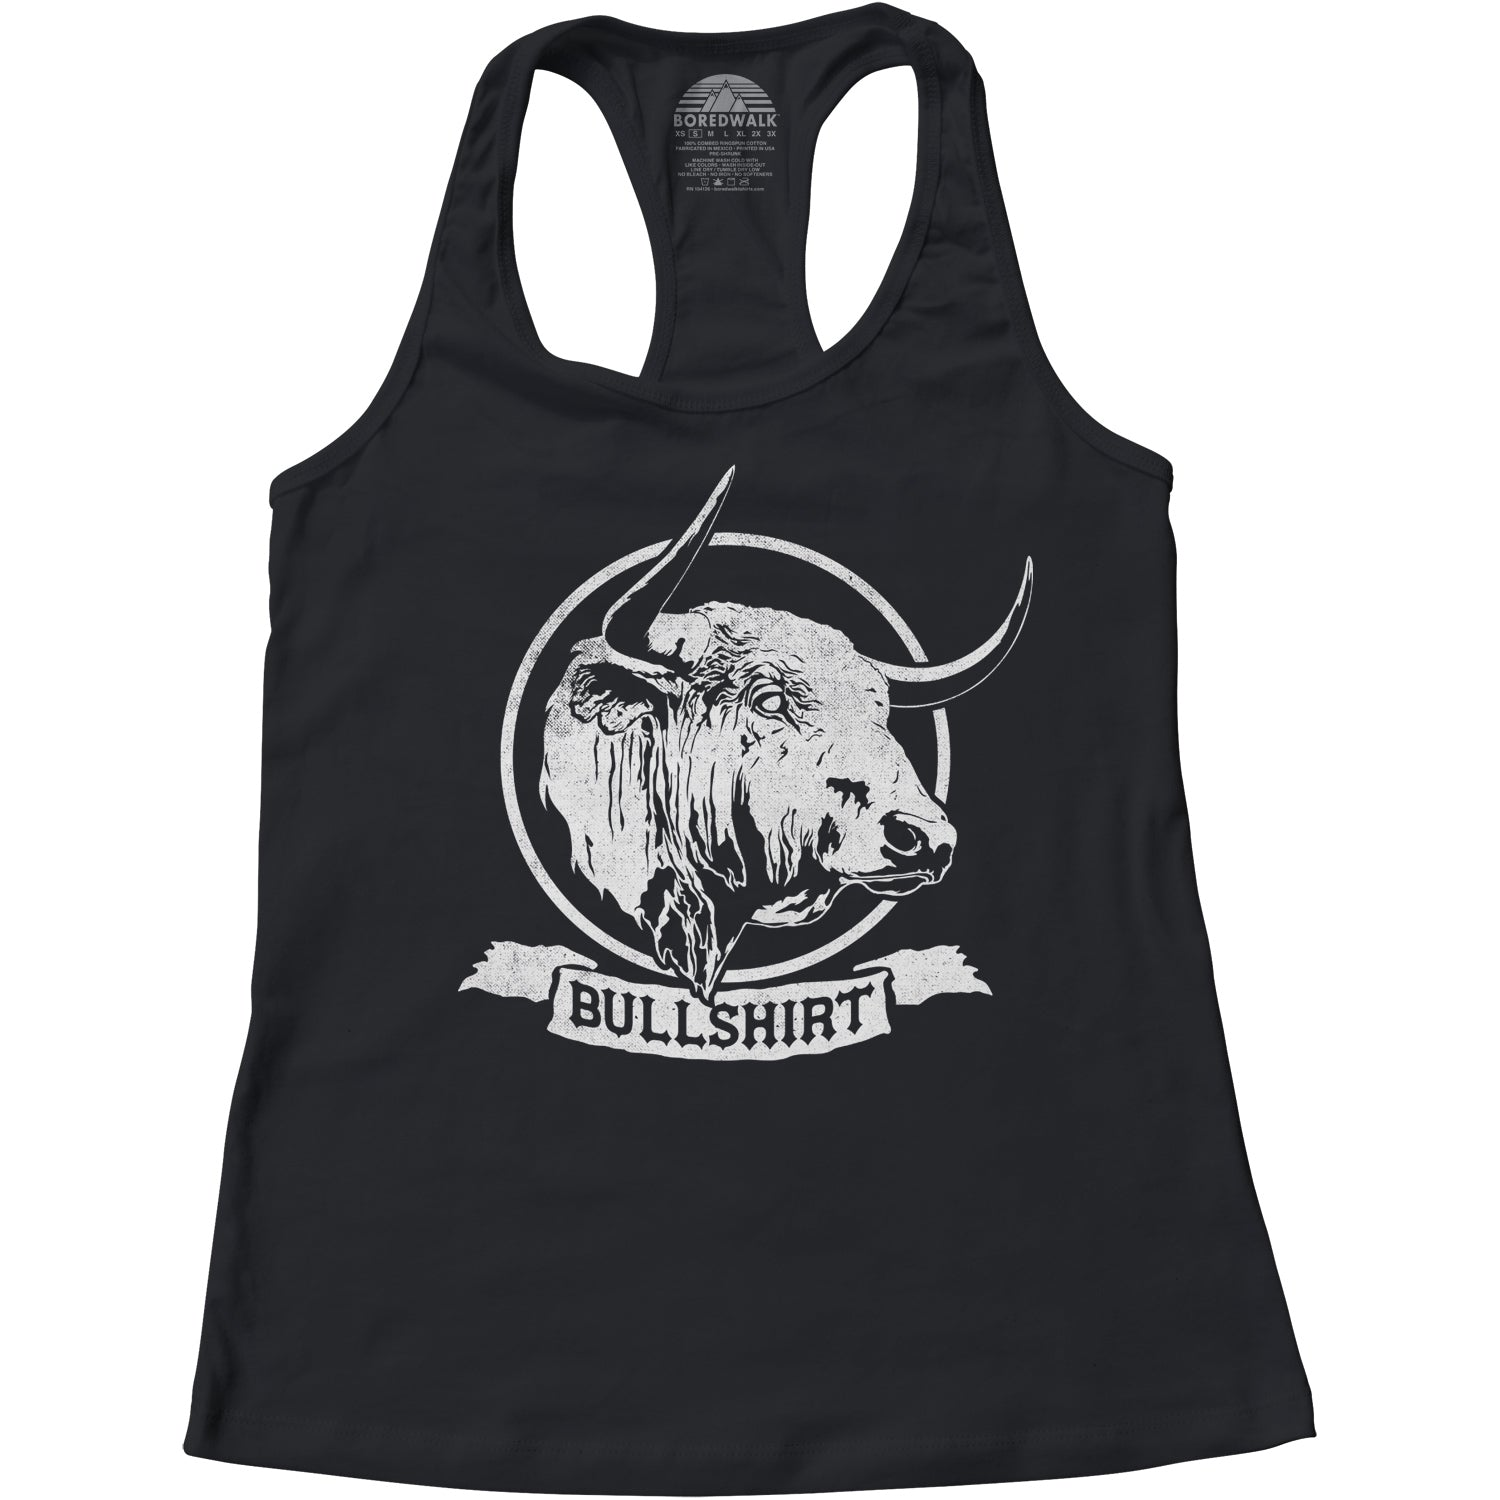 Women's Bull Shirt Racerback Tank Top